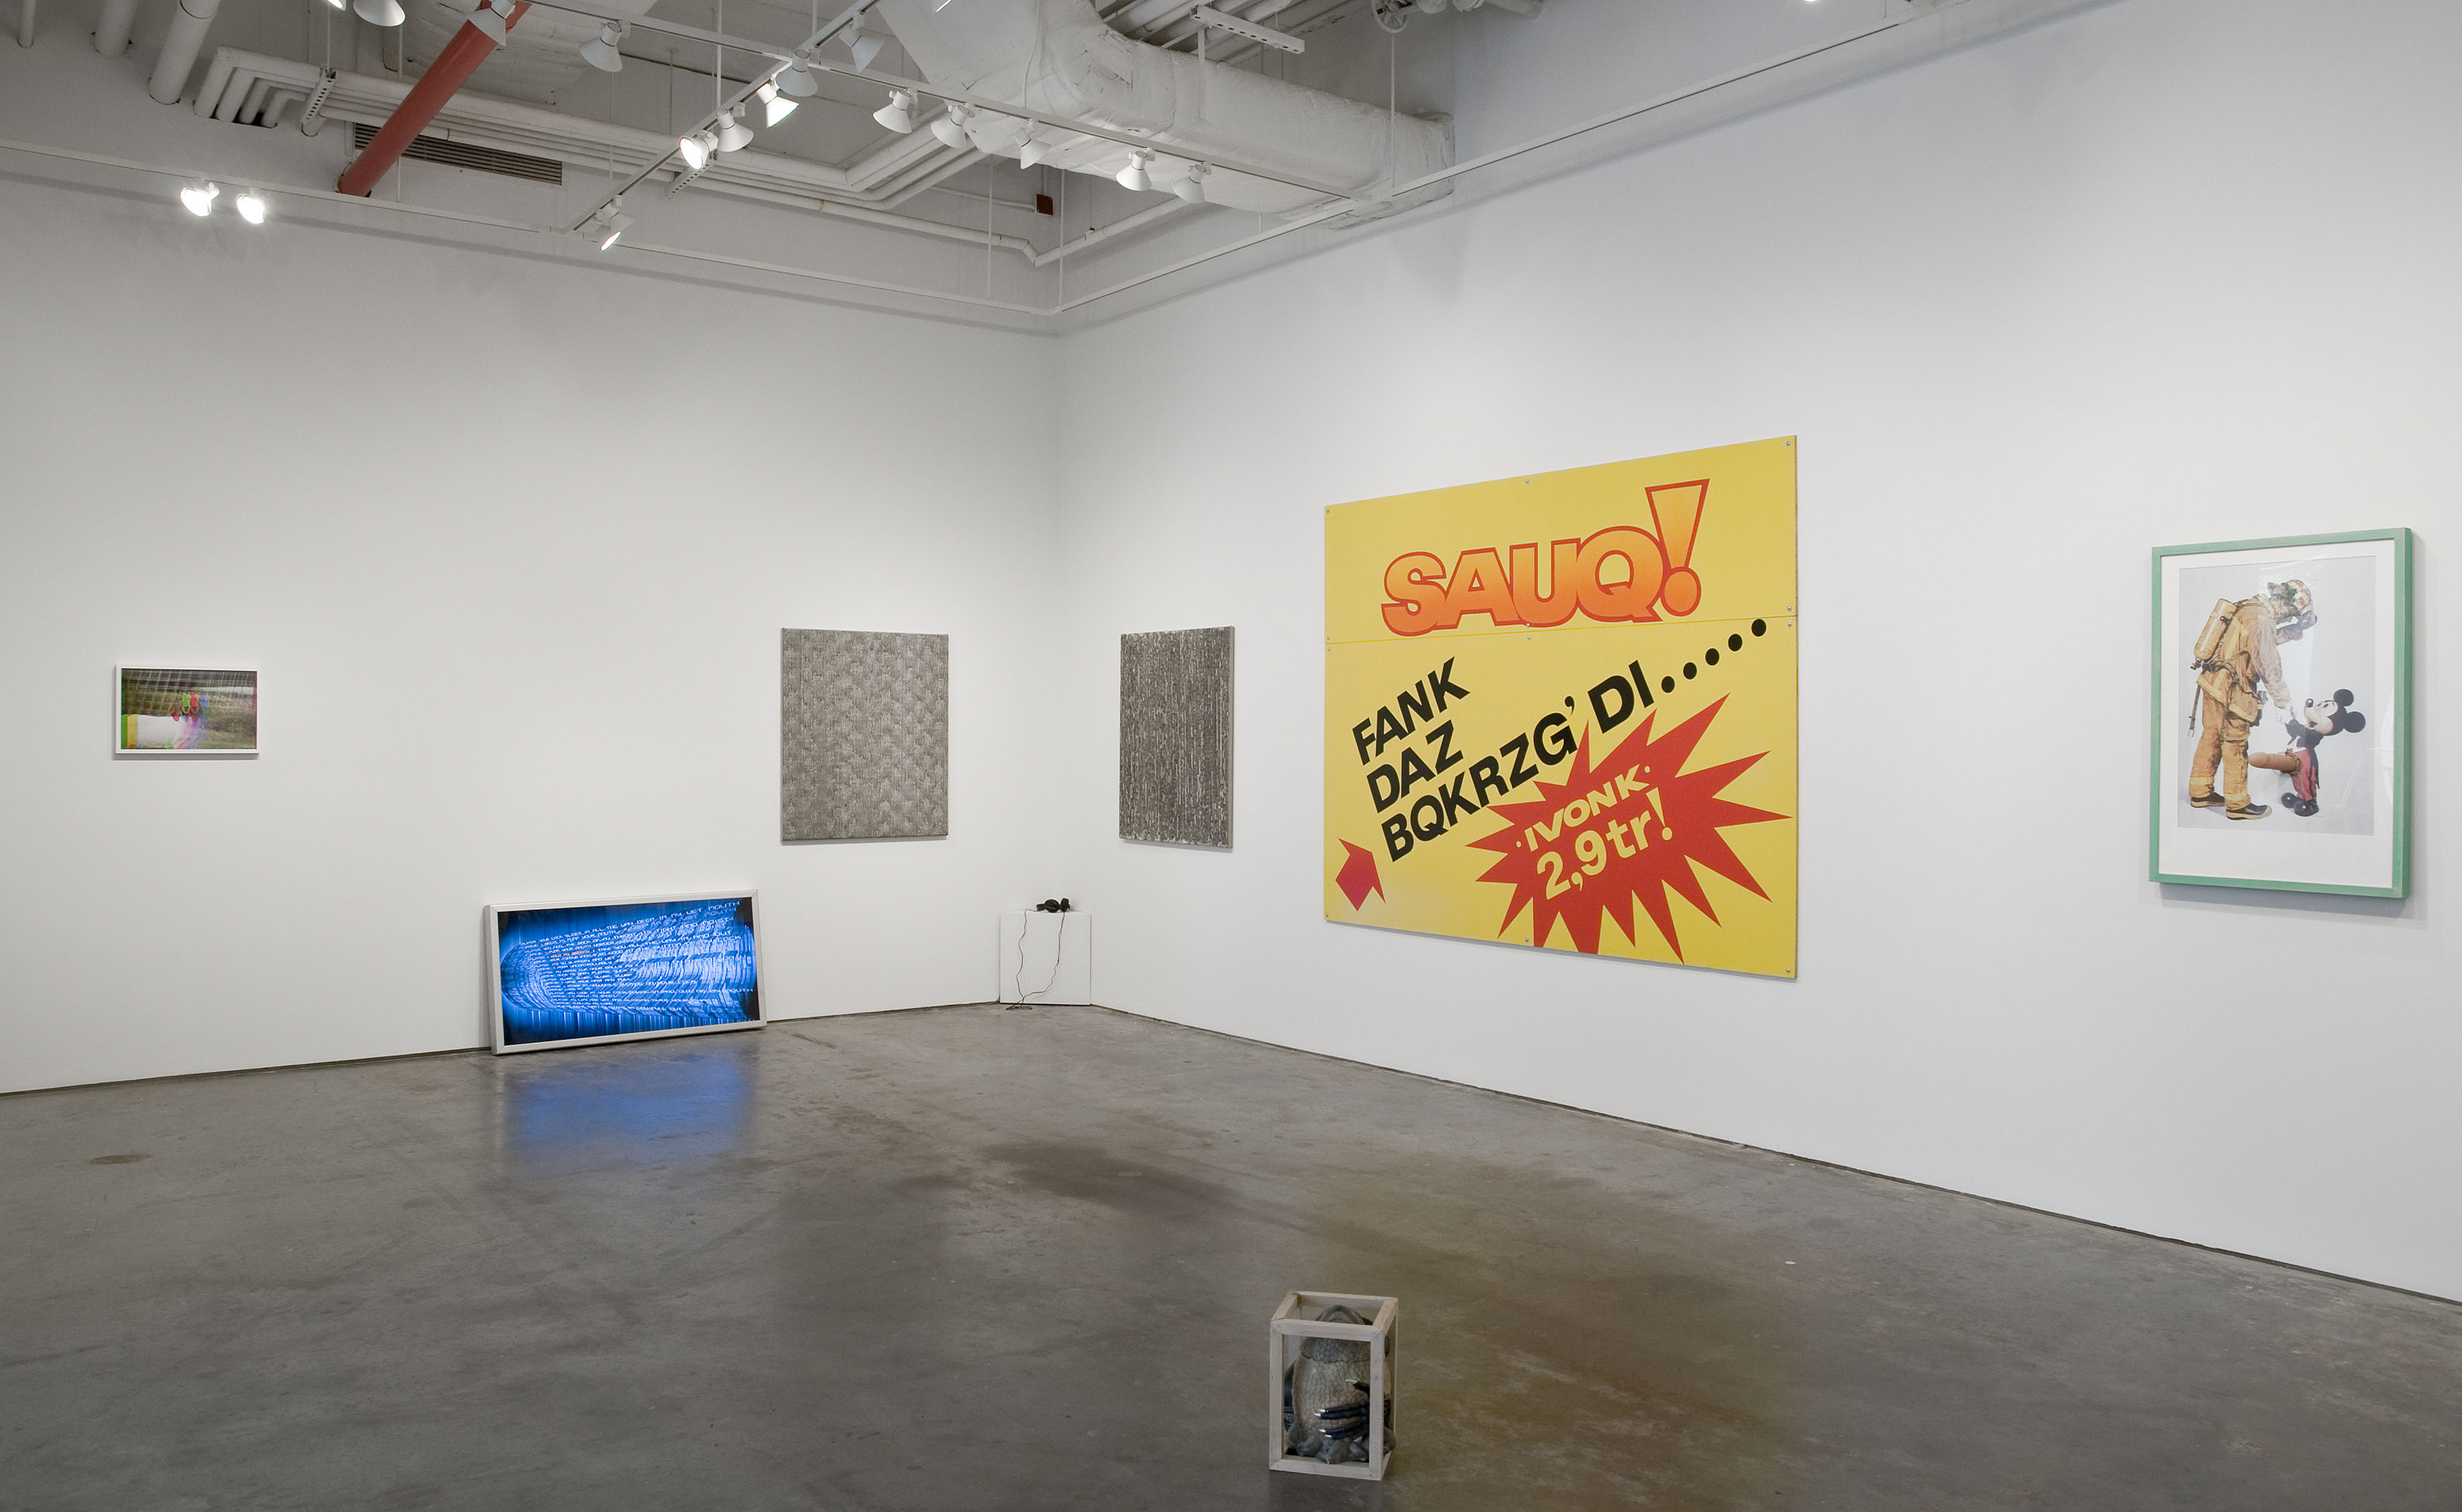 DATA TRASH | May 24 - July 20, 2012 | I-20 Gallery | Installation view